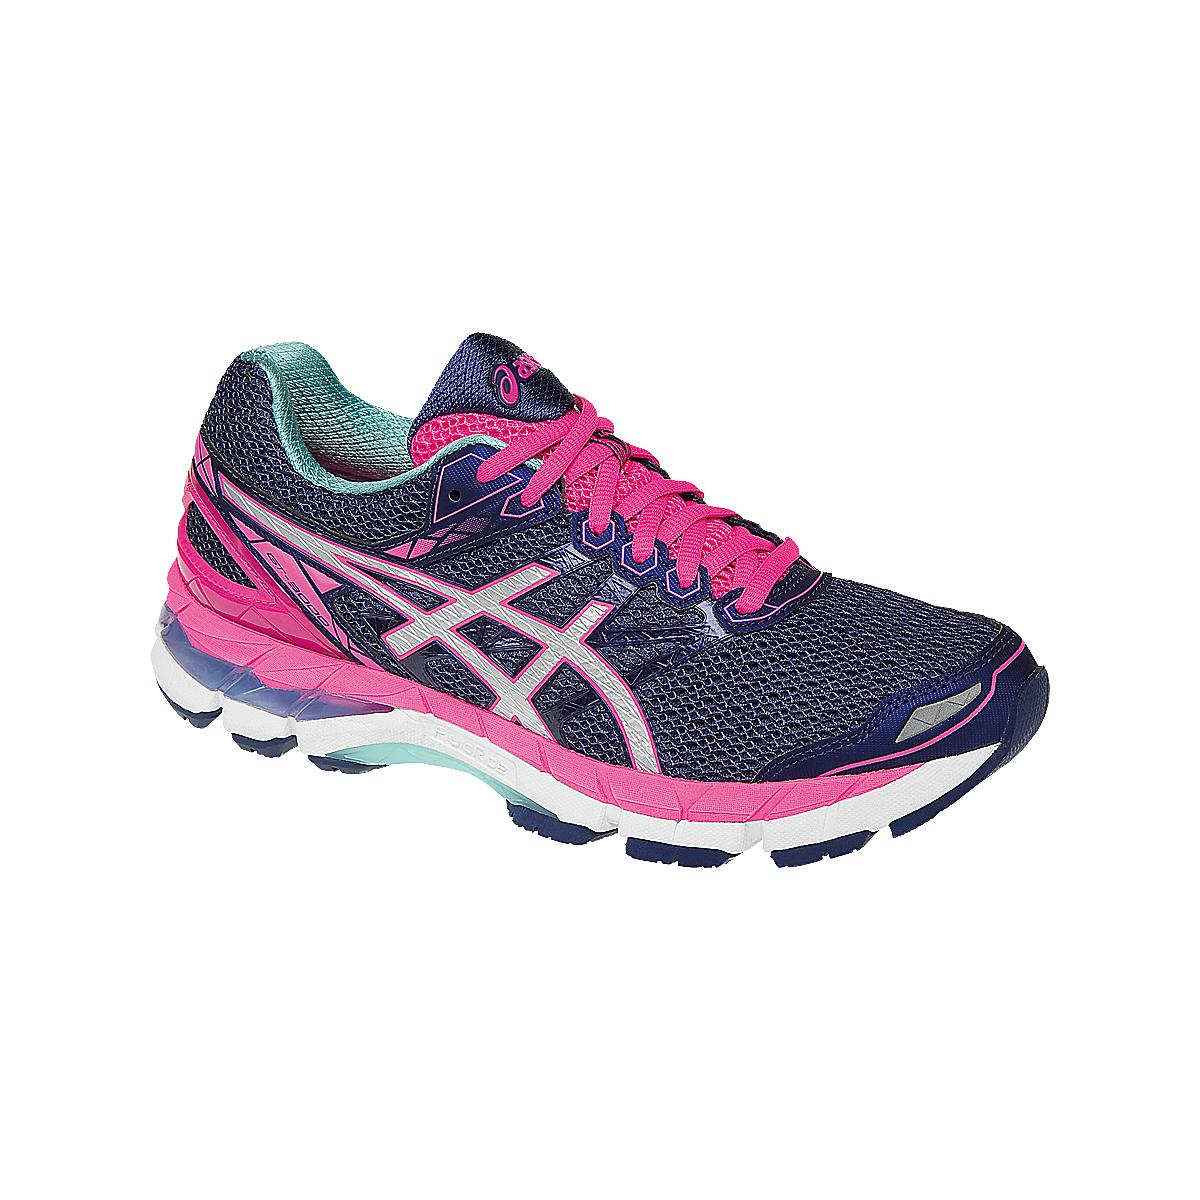 womens asics gt 3000 4 running shoe at road runner sports. Black Bedroom Furniture Sets. Home Design Ideas